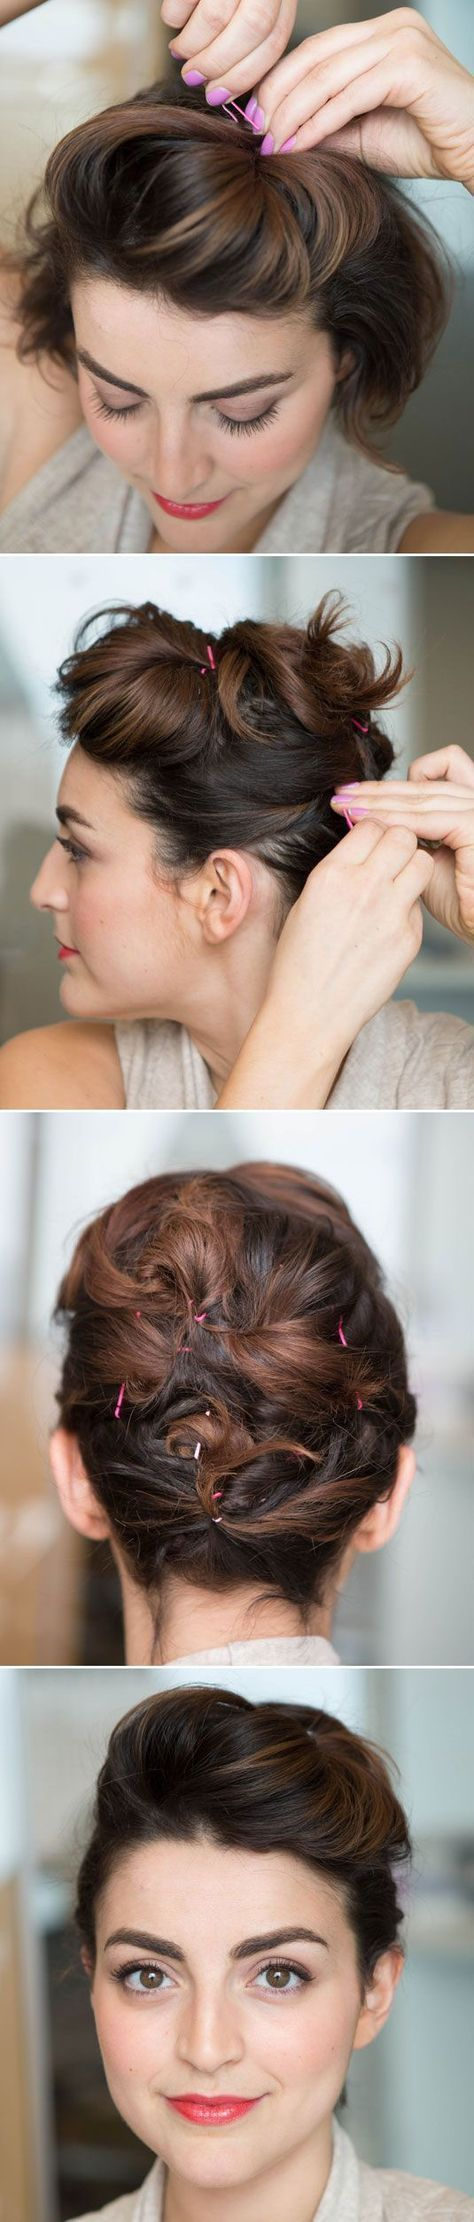 cute and easy hairstyle tutorials for girls with short hair in